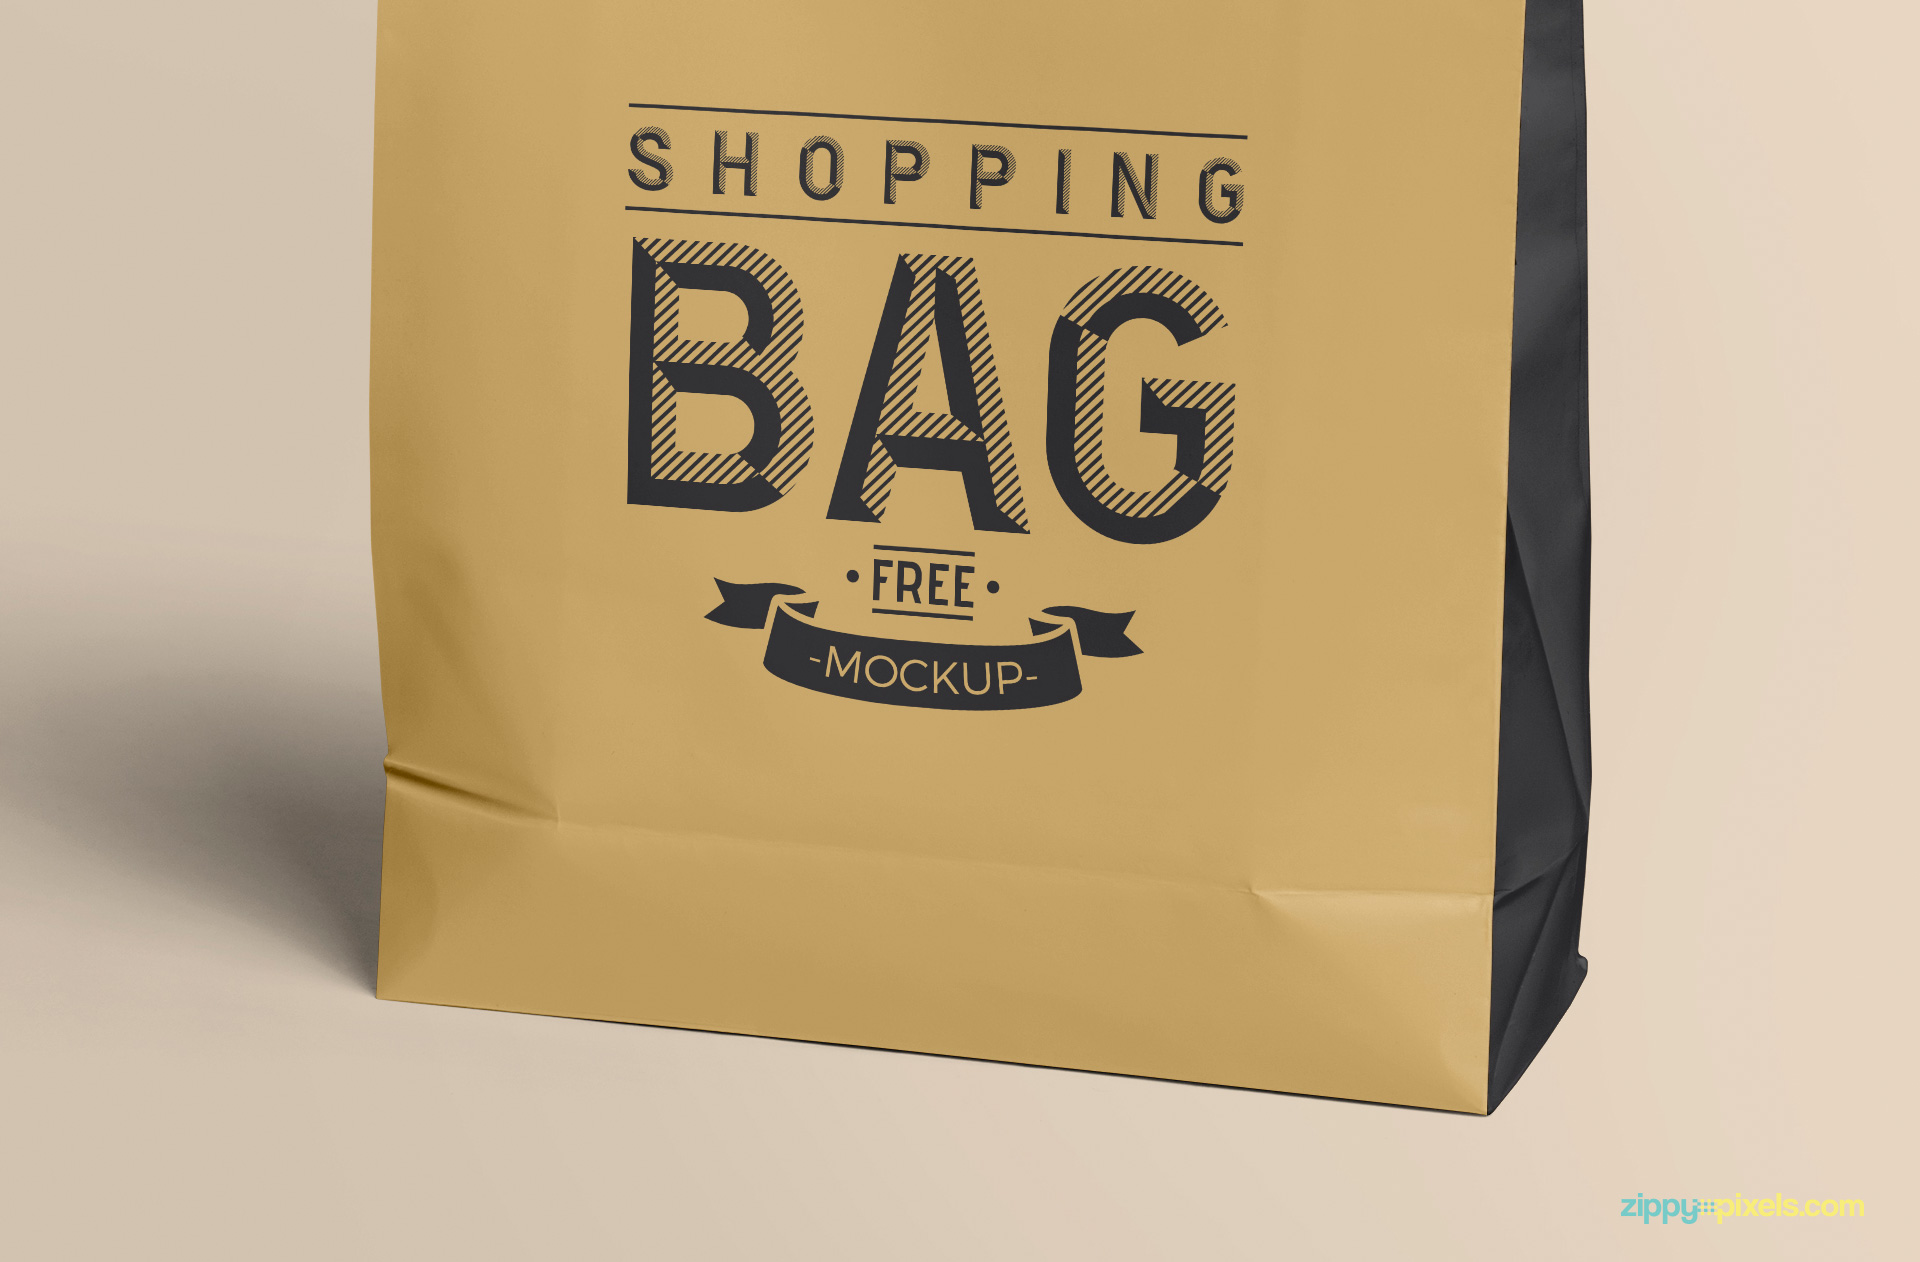 Realistic bag with some fine fold marks on it.